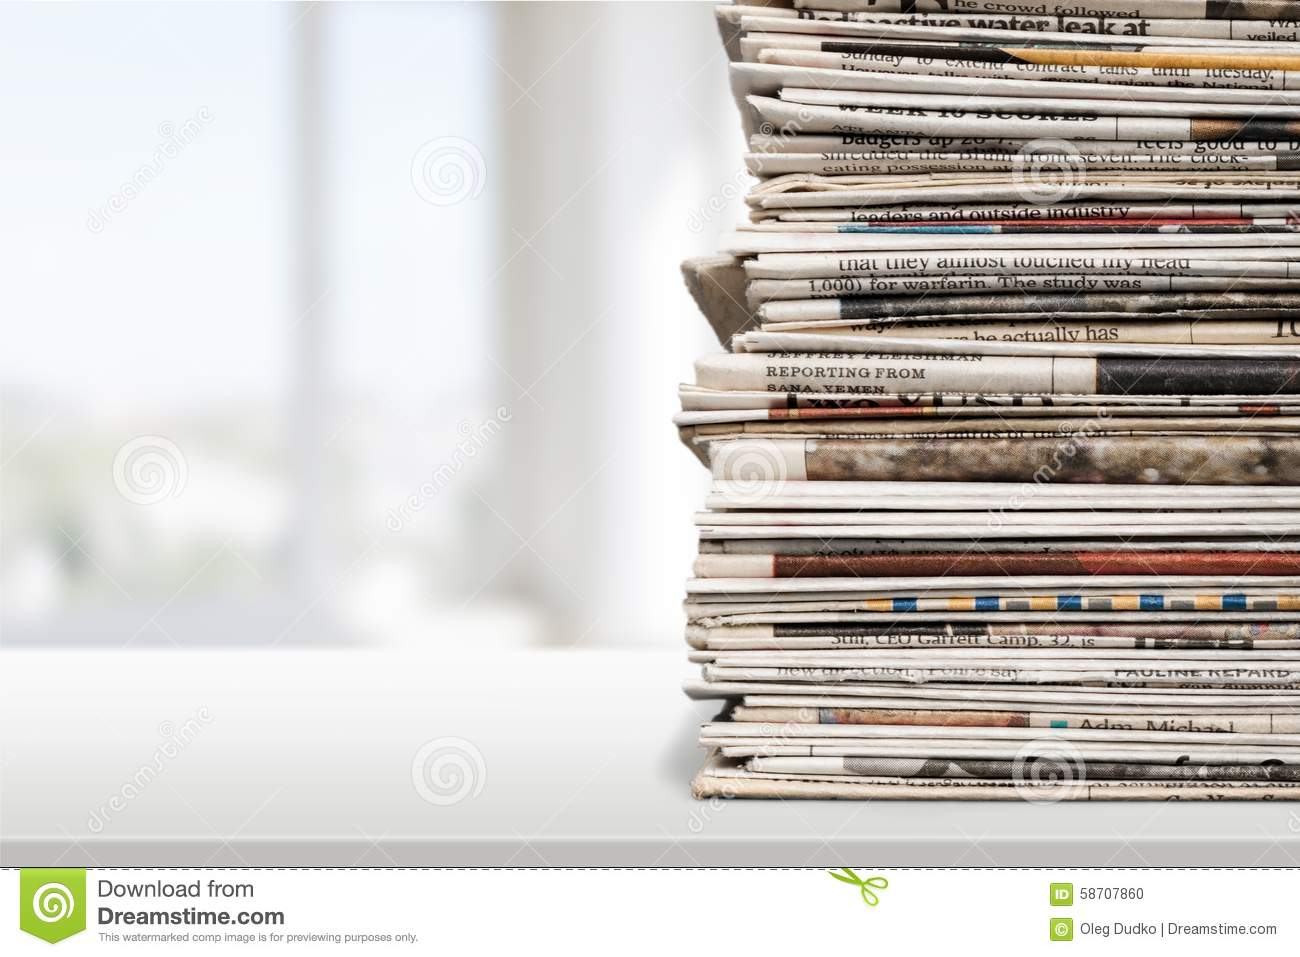 newspaper and print media More than a few people in the print media industry failed to see the winds of  change as they approached much quicker than expected, digital.